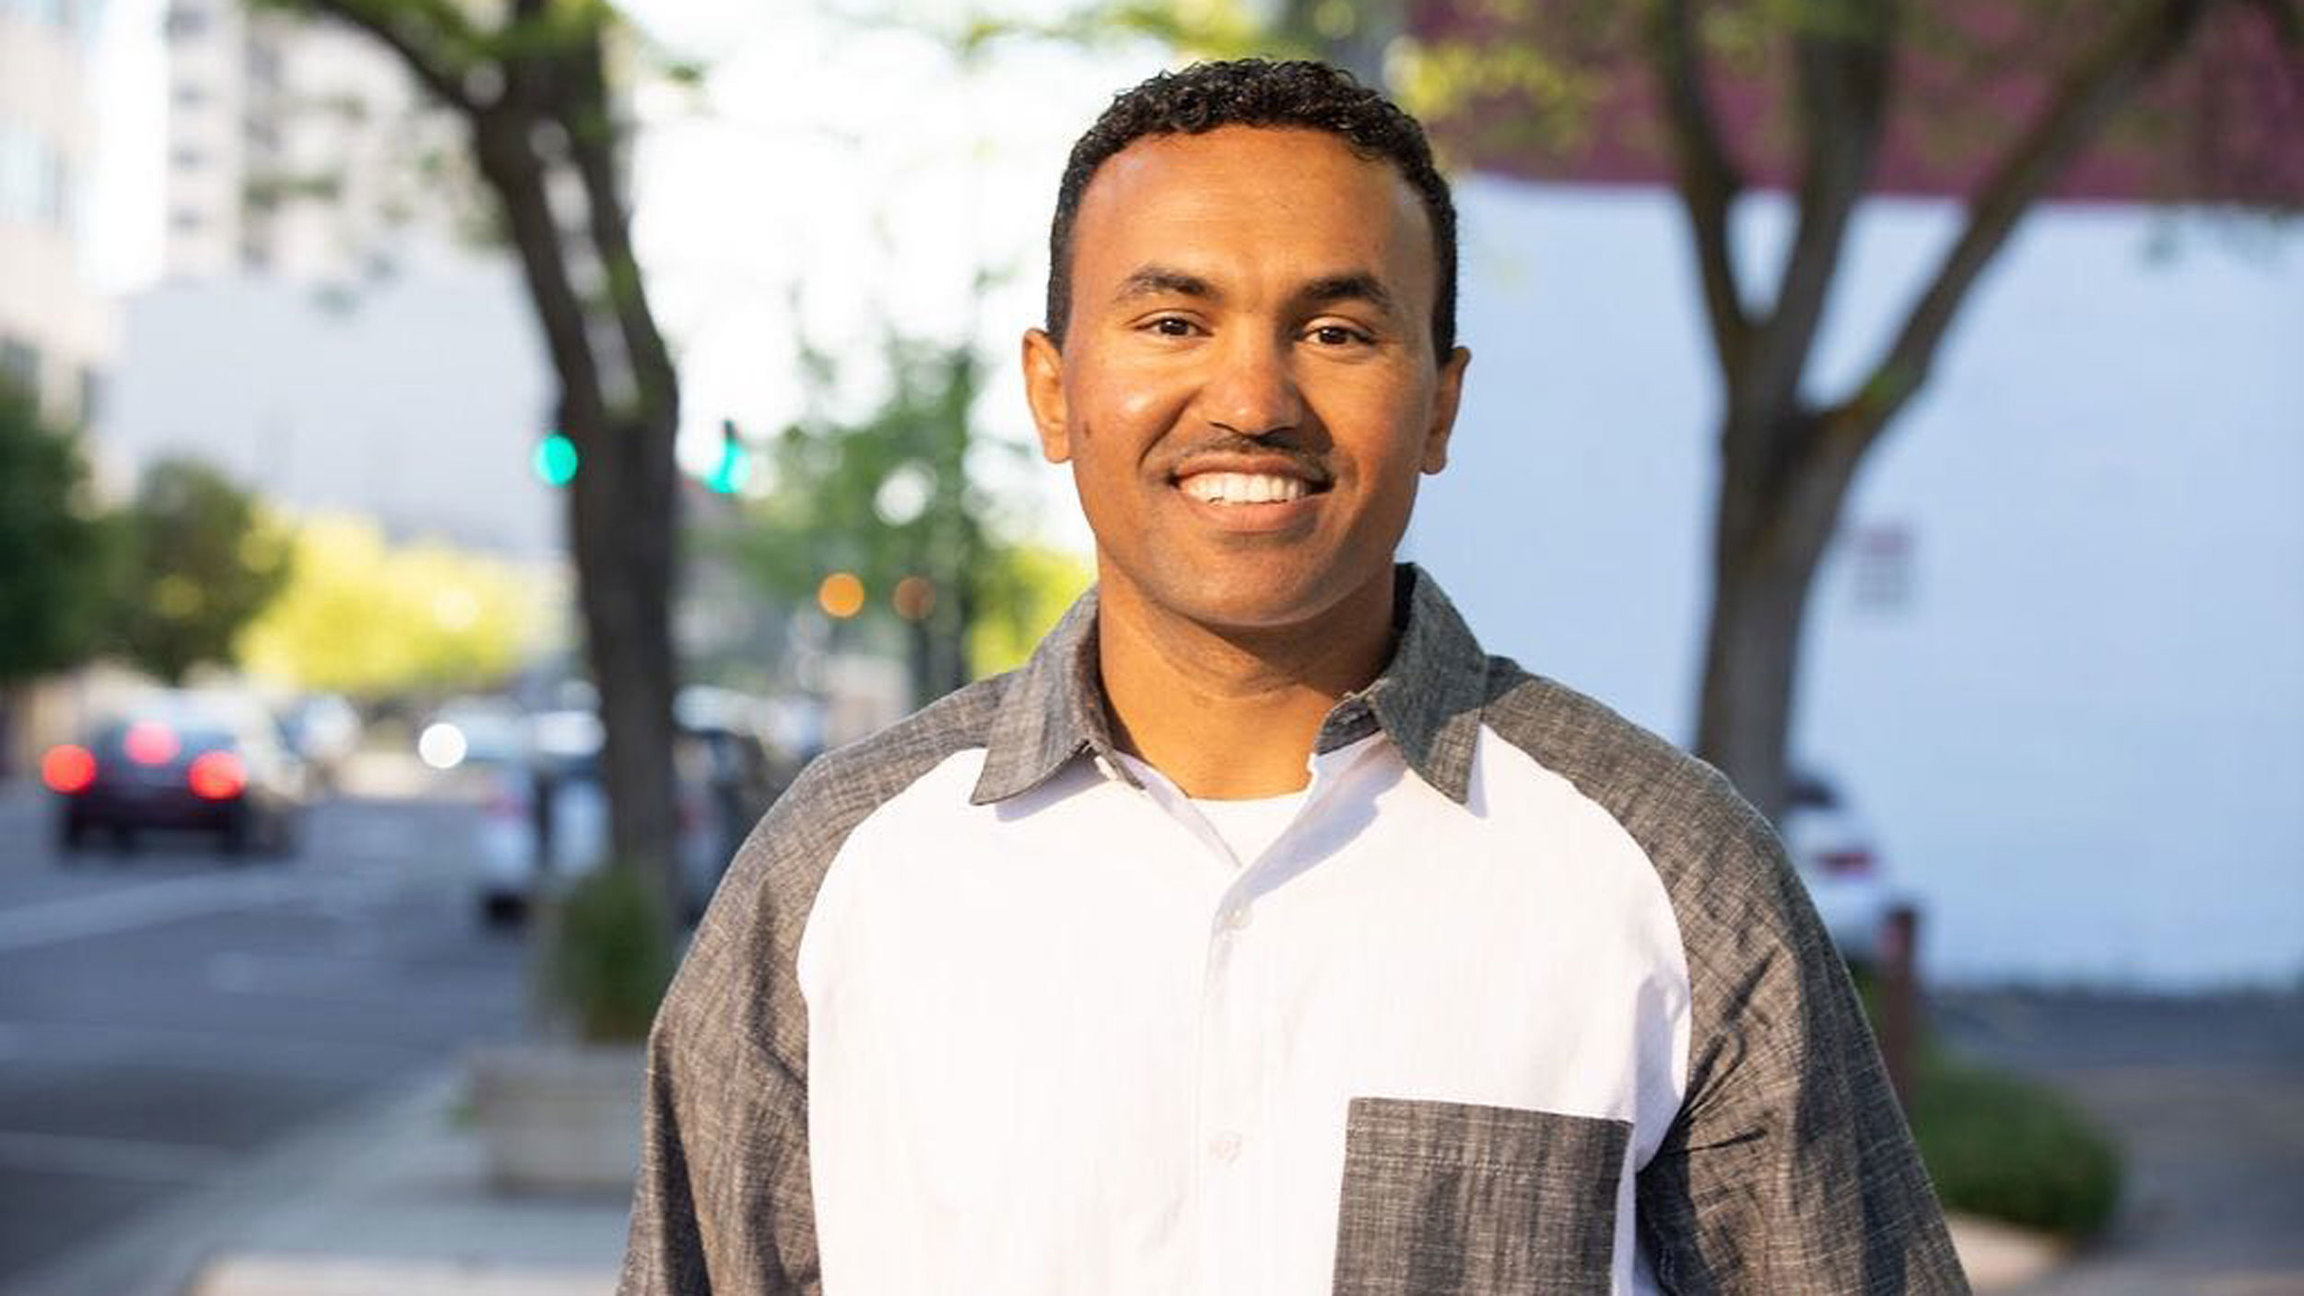 Tecle Gebremichael, a refugee born in Ethiopia who was resettled to the US, has also advocated for the expansion of the US resettlement program.